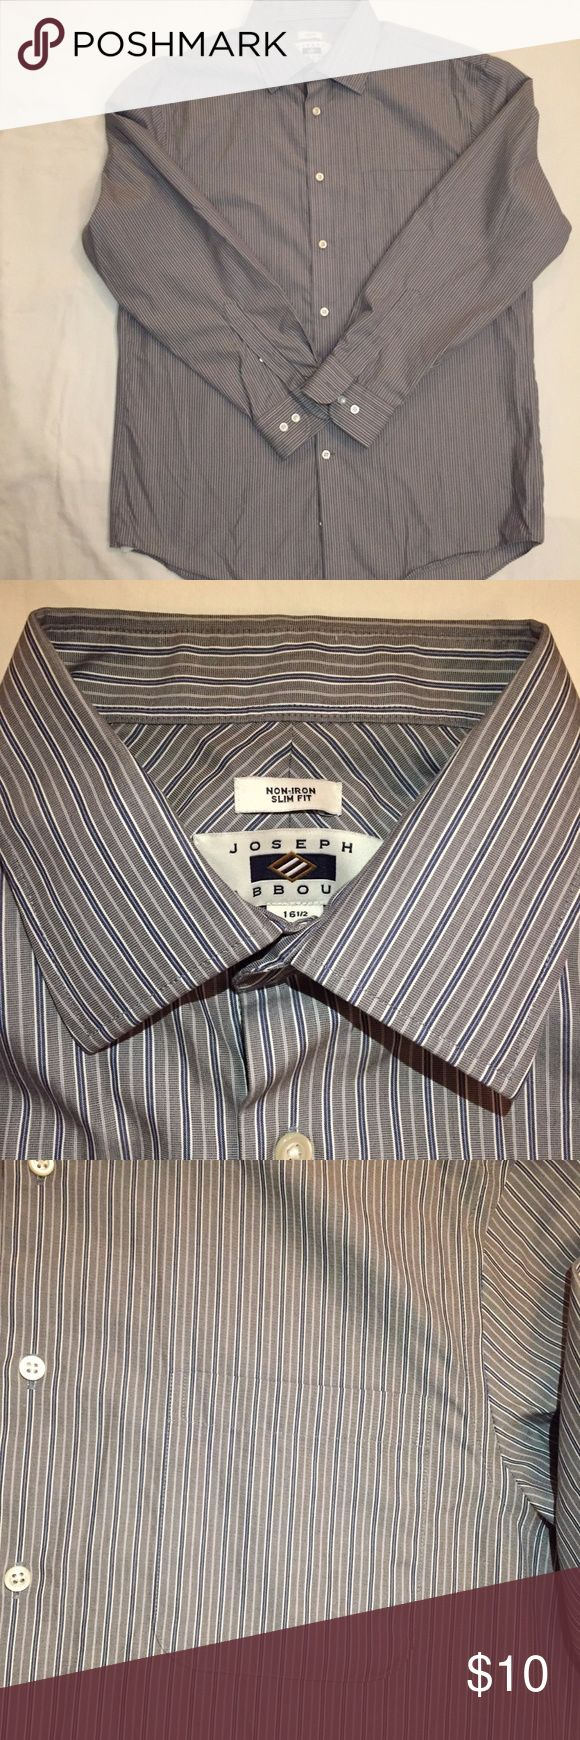 EUC Joseph Abboud Striped Dress Shirt Slim Fit Size 16.5, 32/33 arm lentgth.  Slim fit, Non iron Joseph Abboud (Men's Warehouse brand) Joseph Abboud (Men's Wearhouse) One front pocket, Button sleeves Excellent condition-- now flaws.  Bundle with other men's clothes and I will send you an offer for 50% off! Joseph Abboud Shirts Dress Shirts